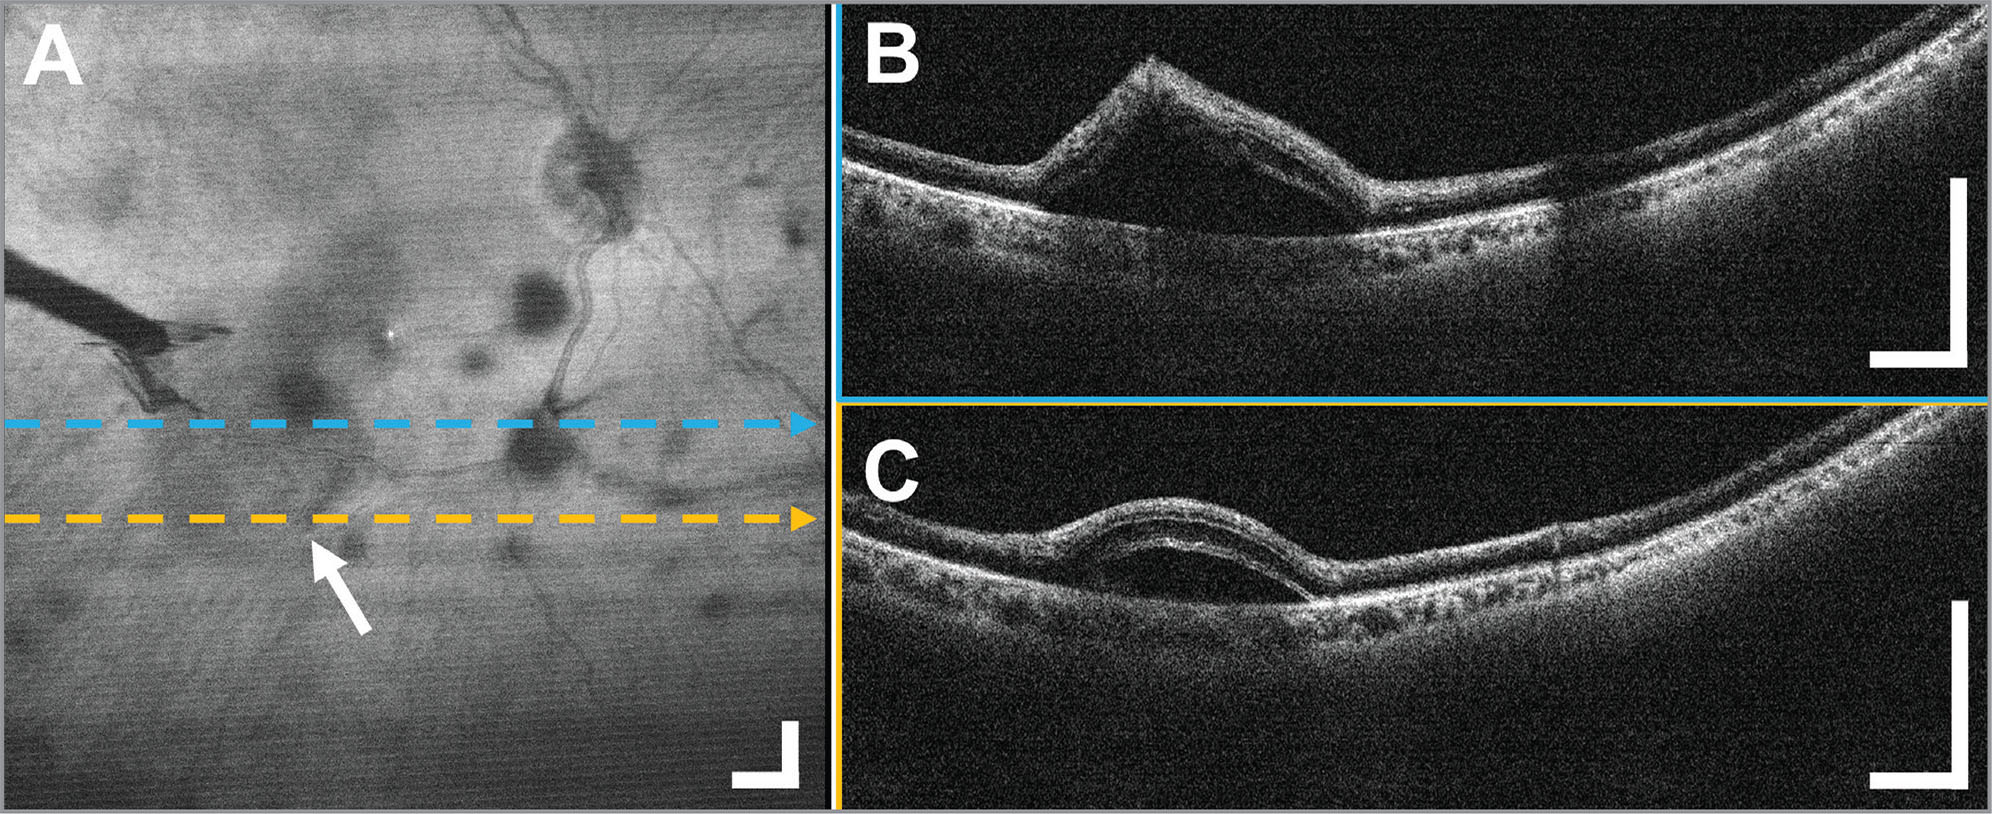 A 12 × 12 mm2 widefield optical coherence tomography (OCT) in the diabetic tractional detachment of a 50-year-old male subject imaged through the standard 80 diopter non-contact fundus lens during a vitrectomy to evaluate a possible retinal tear. (A) Widefield en face OCT projection with the arrow and tool shadow indicating the off-center retinal detachment. During the surgery, there was a question of an iatrogenic retinal break as a result of peeling with forceps. (B, C) Representative OCT B-scans obtained over the area showed the tented retina, but confirmed the absence of a retinal break. Displayed B-scans are averages of five adjacent B-scans. Scale bars are 1 mm.